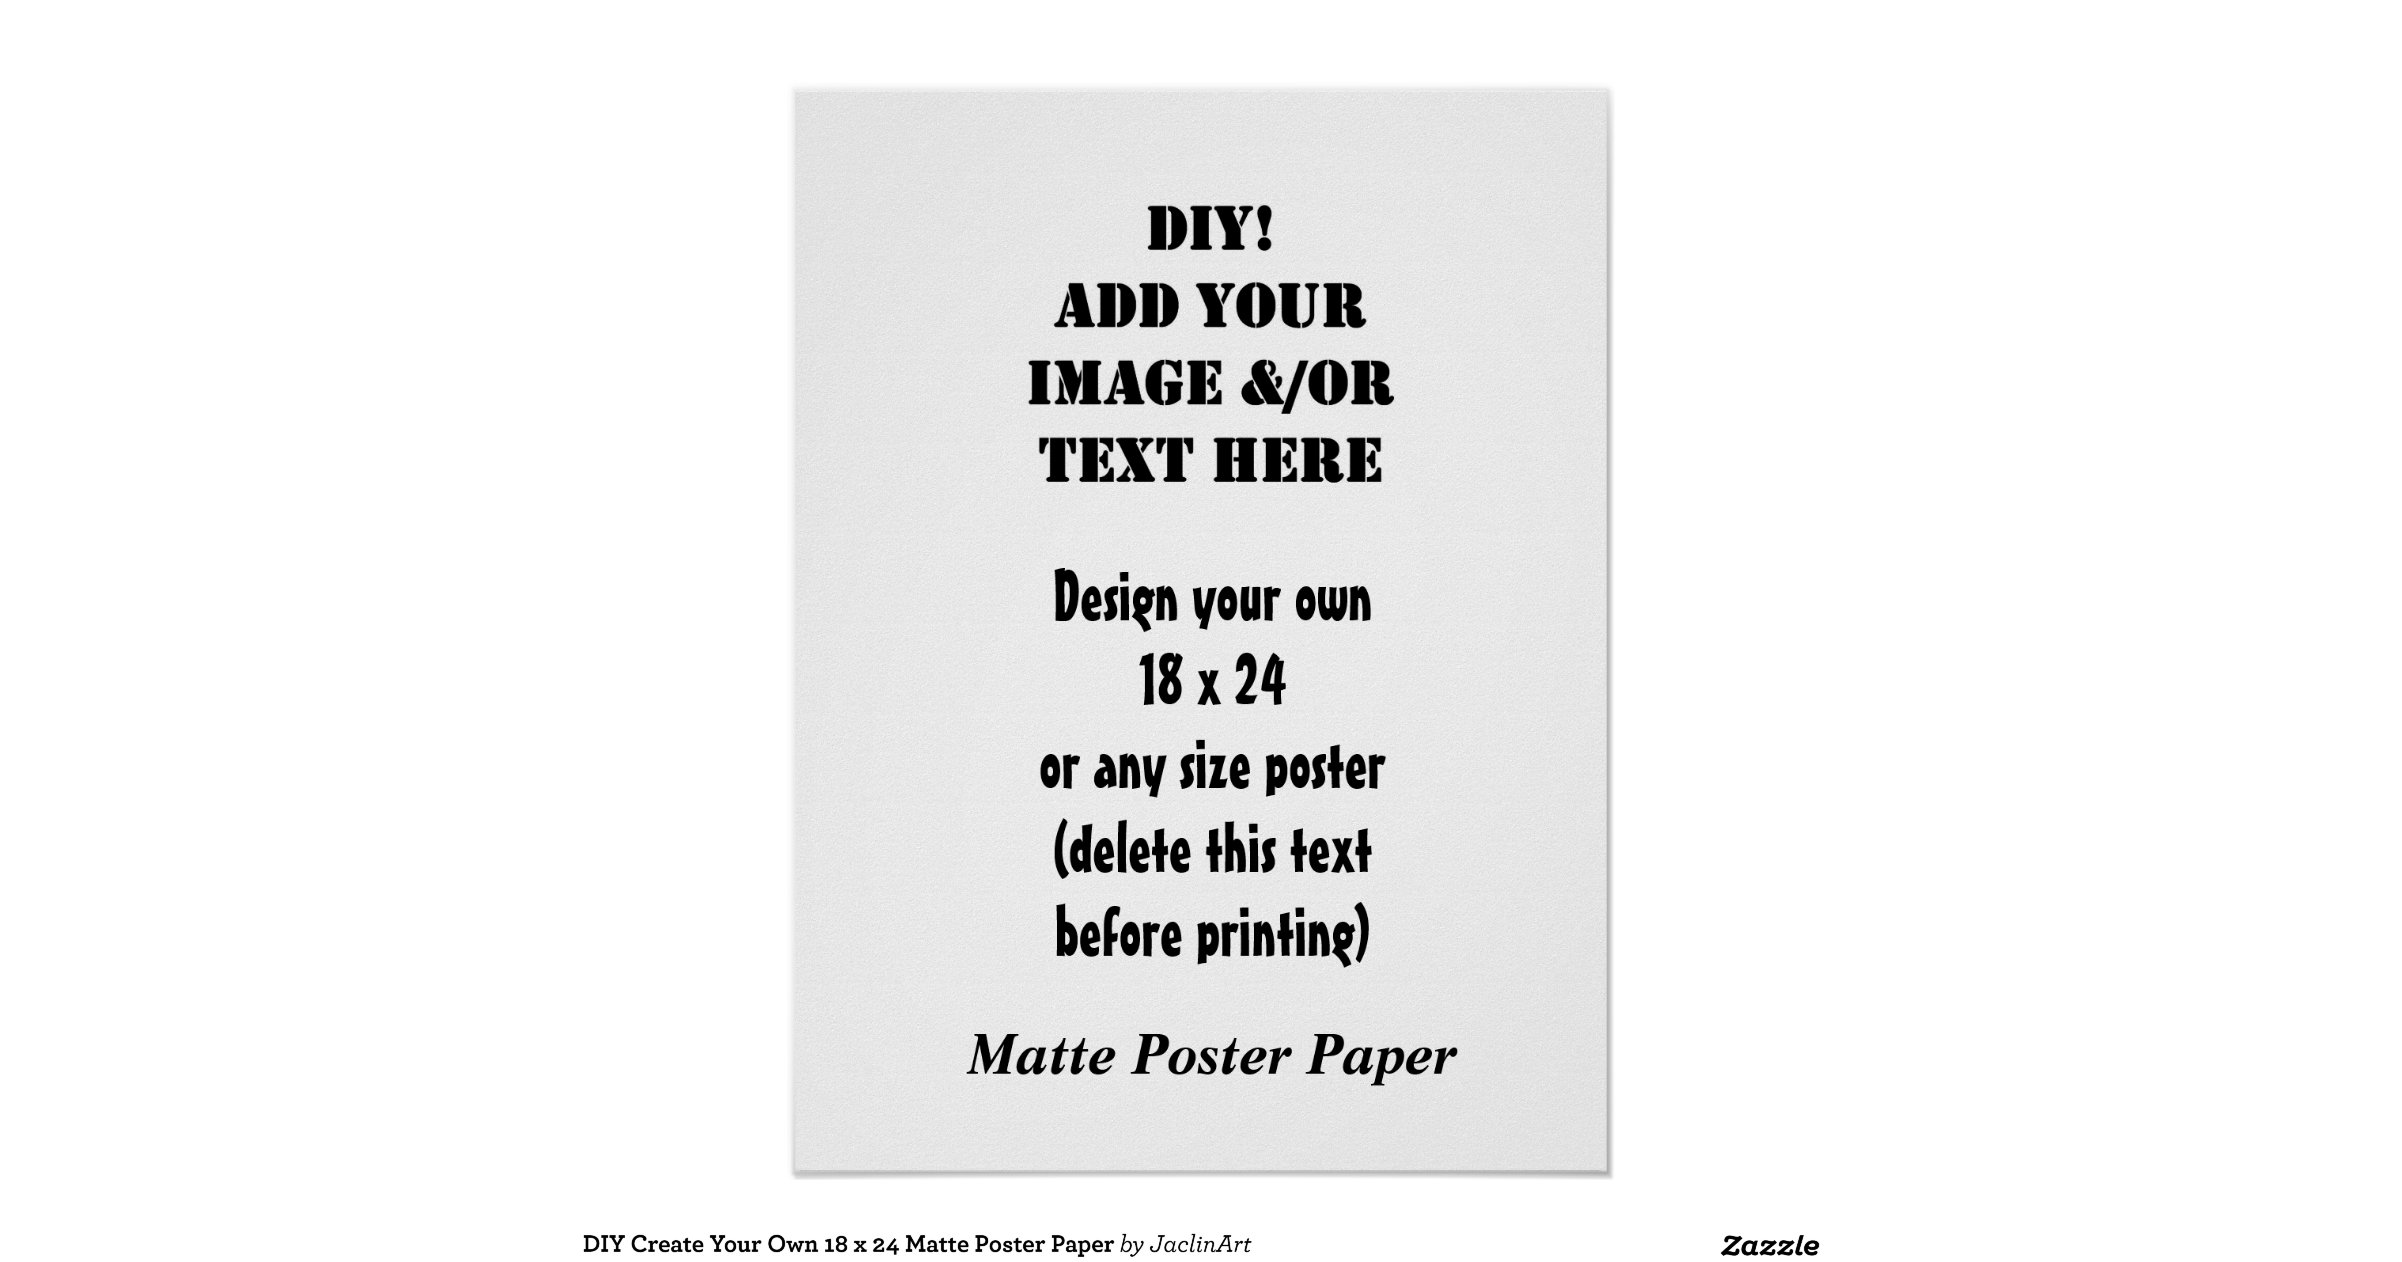 diy_create_your_own_18_x_24_matte_poster_paper ...